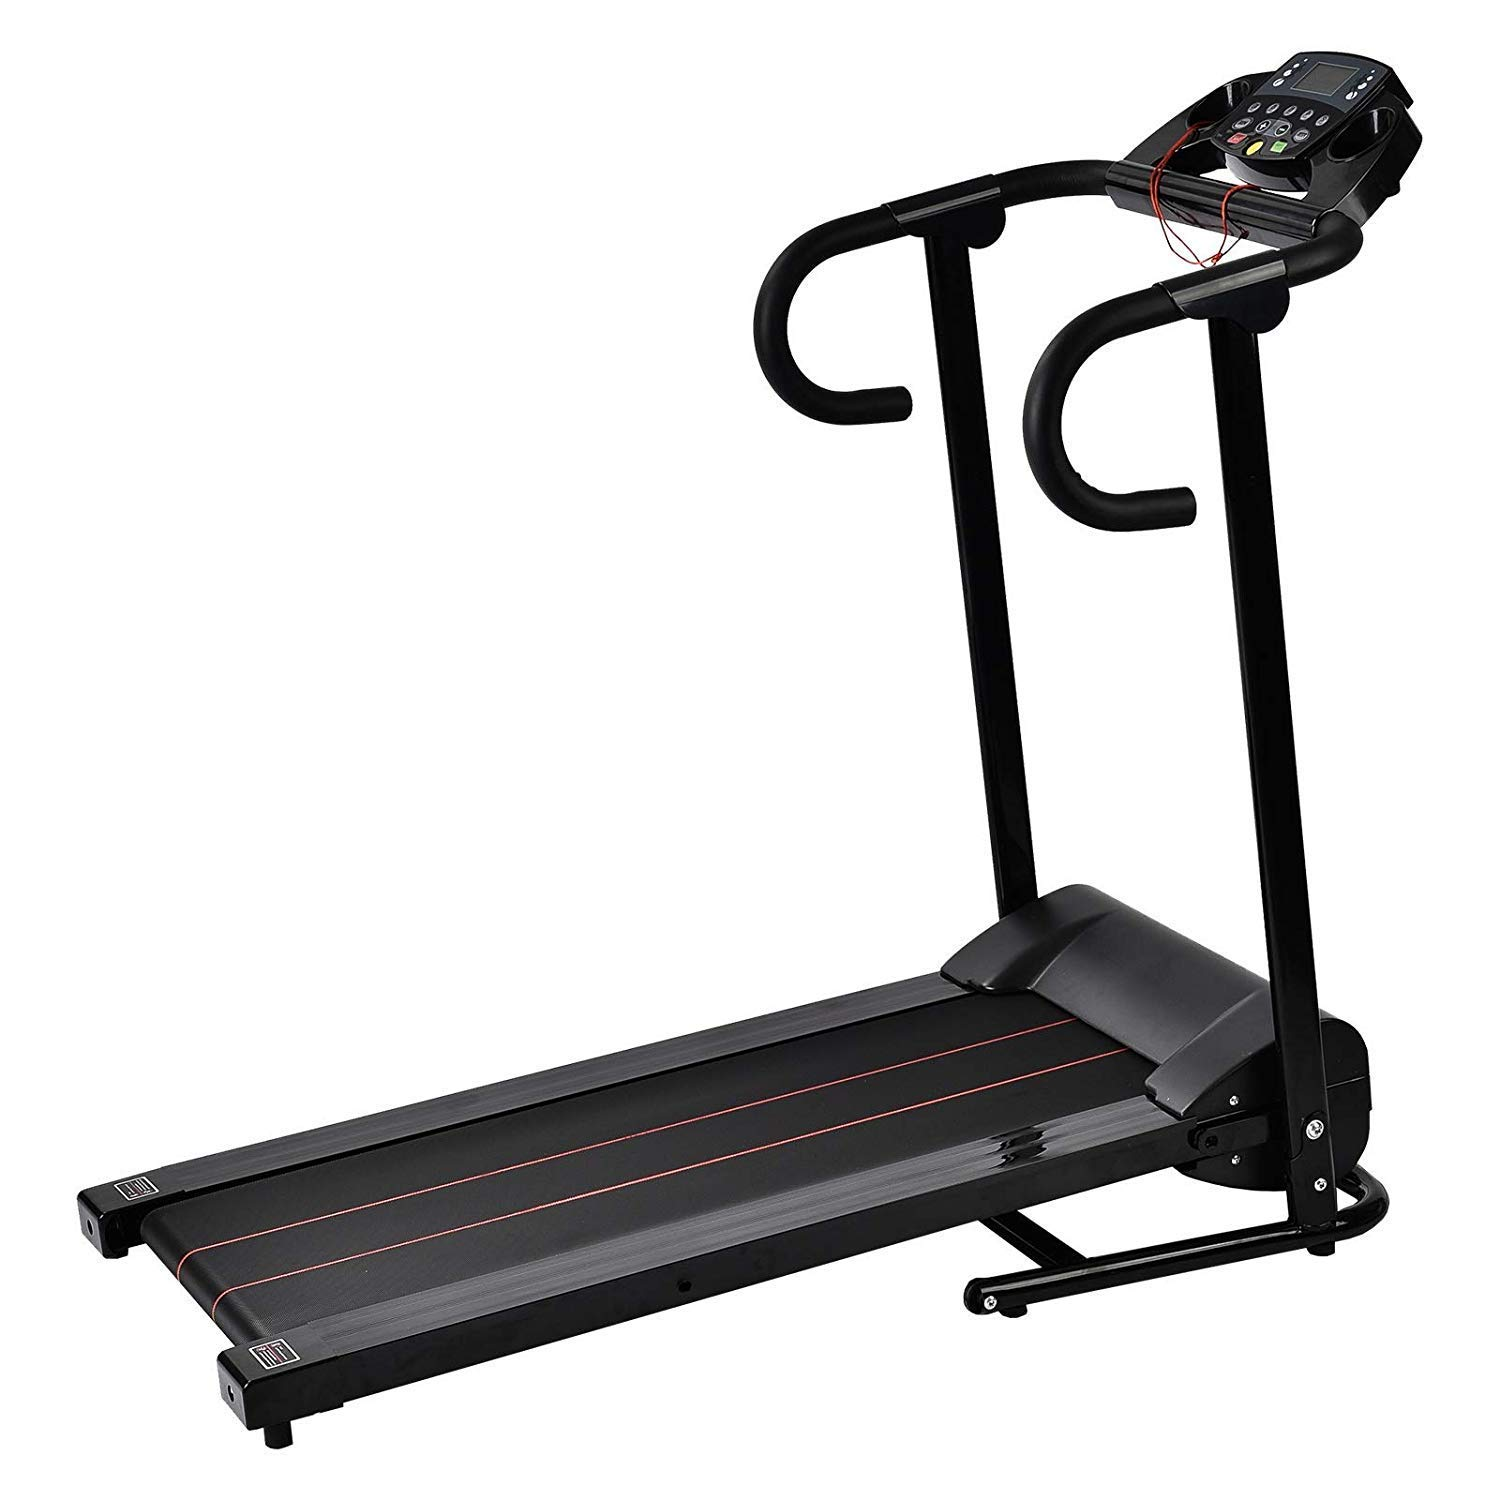 Murtisol 1100W Folding Treadmill Electric Walking Running Exercise Fitness Machine with LCD Display Easy Control Home Gym by Murtisol (Image #2)